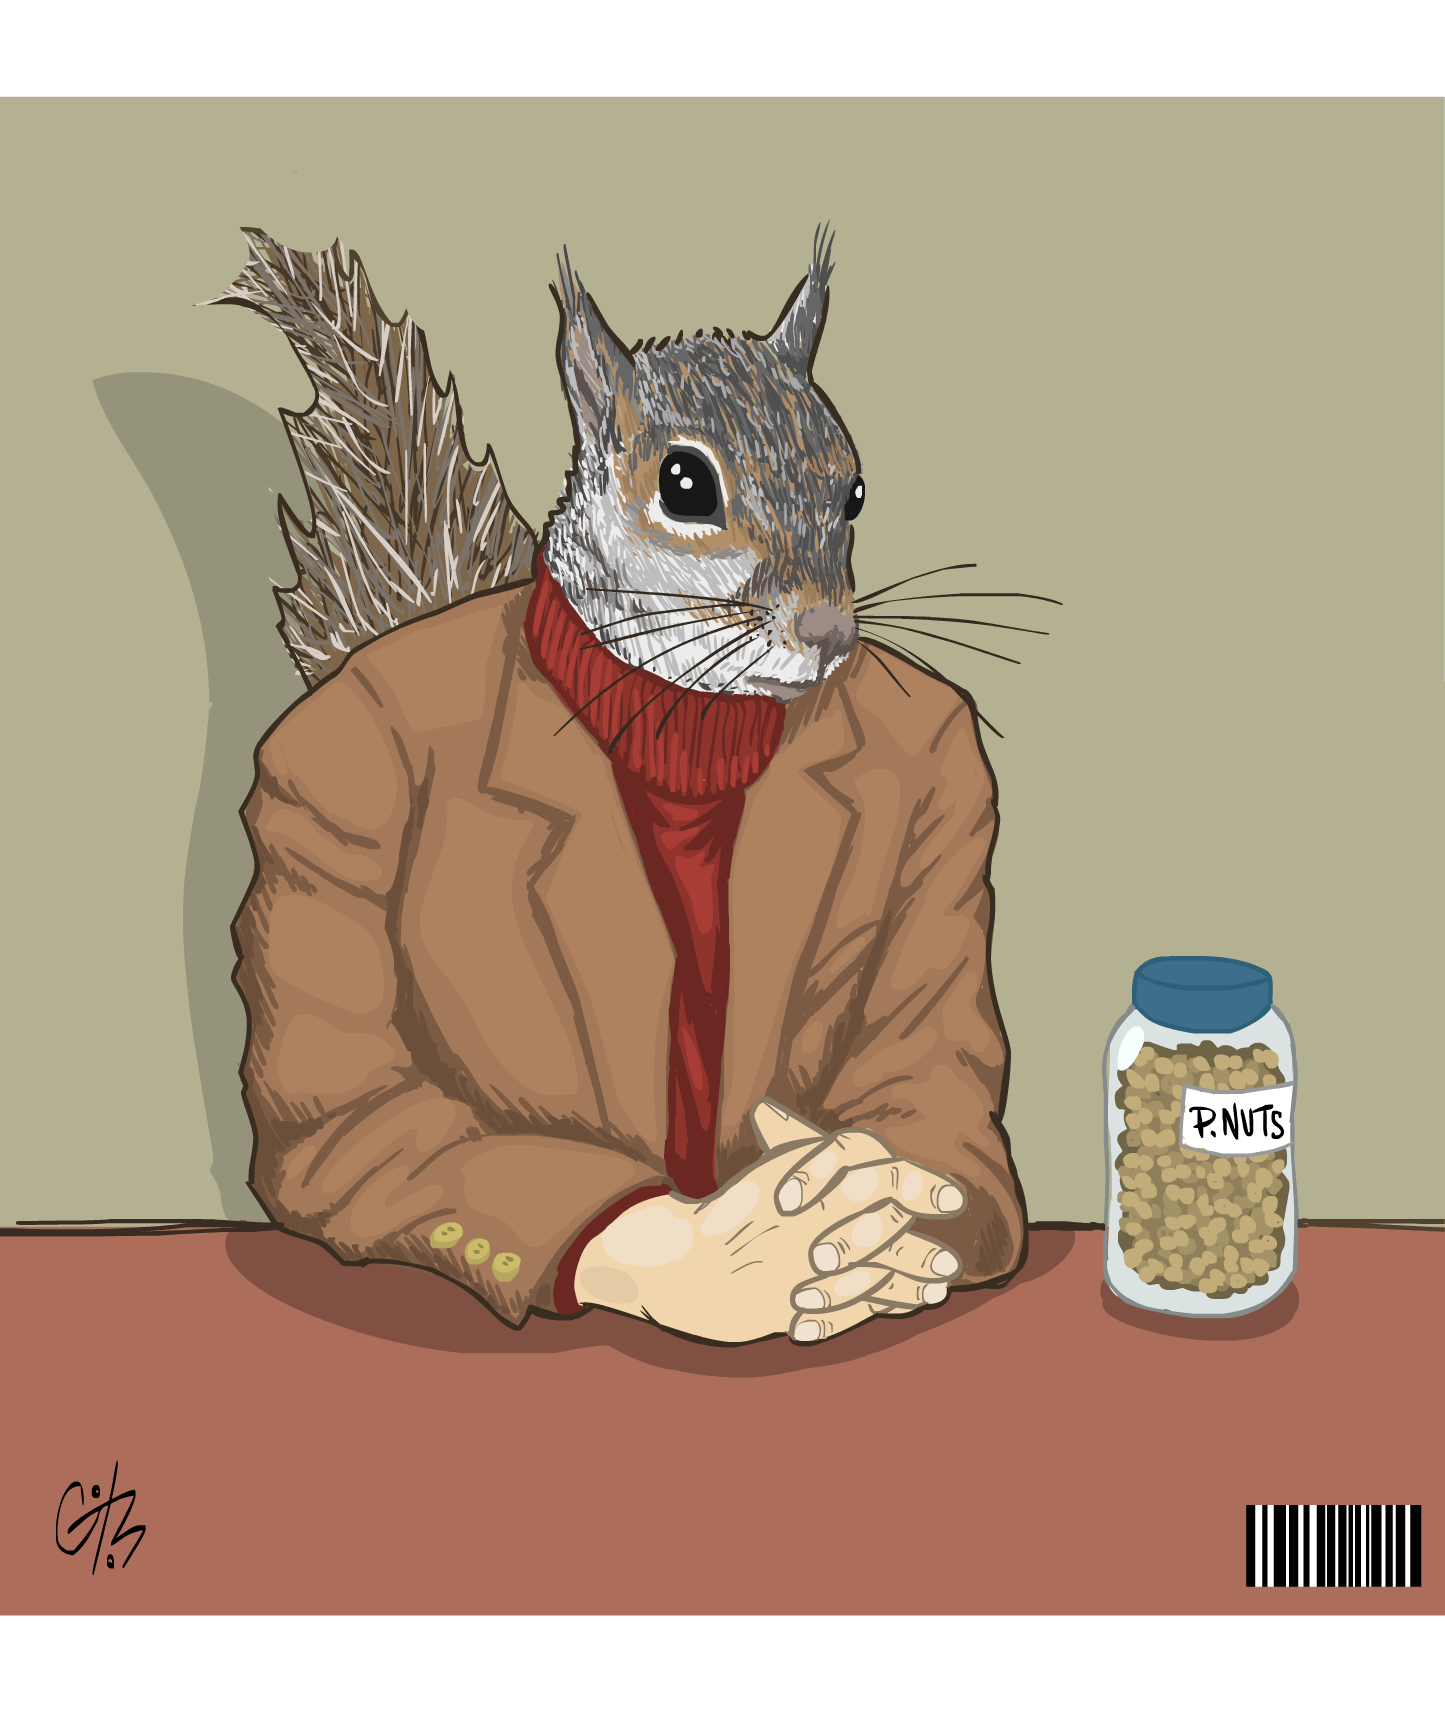 Mr. P. Nutts